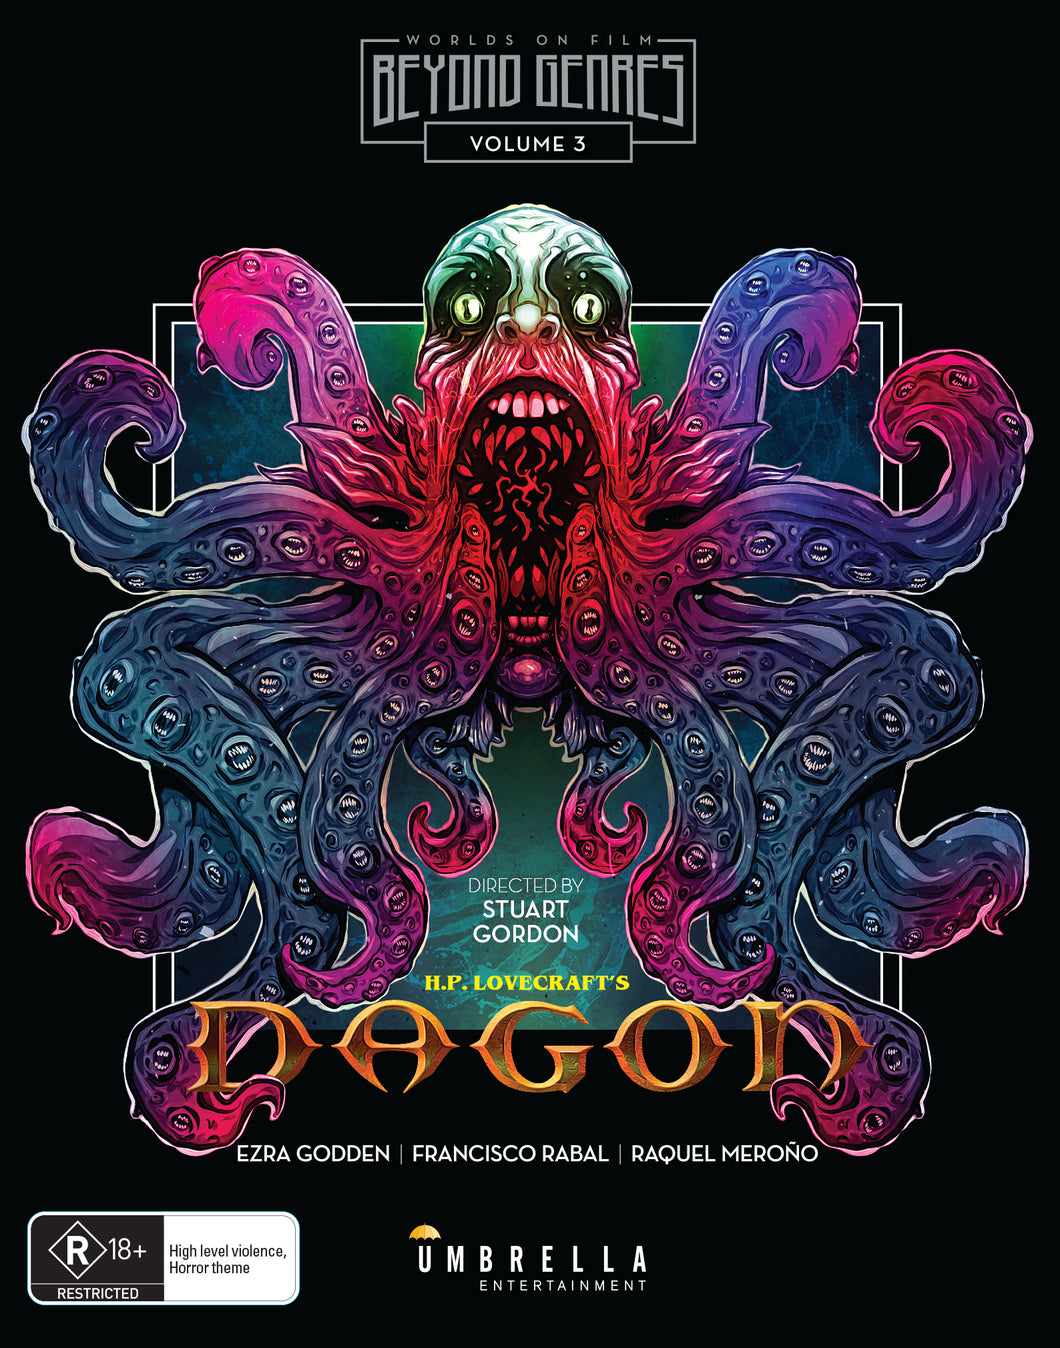 Dagon (H.P. Lovecraft) Blu-Ray (Beyond Genres Vol. 3)